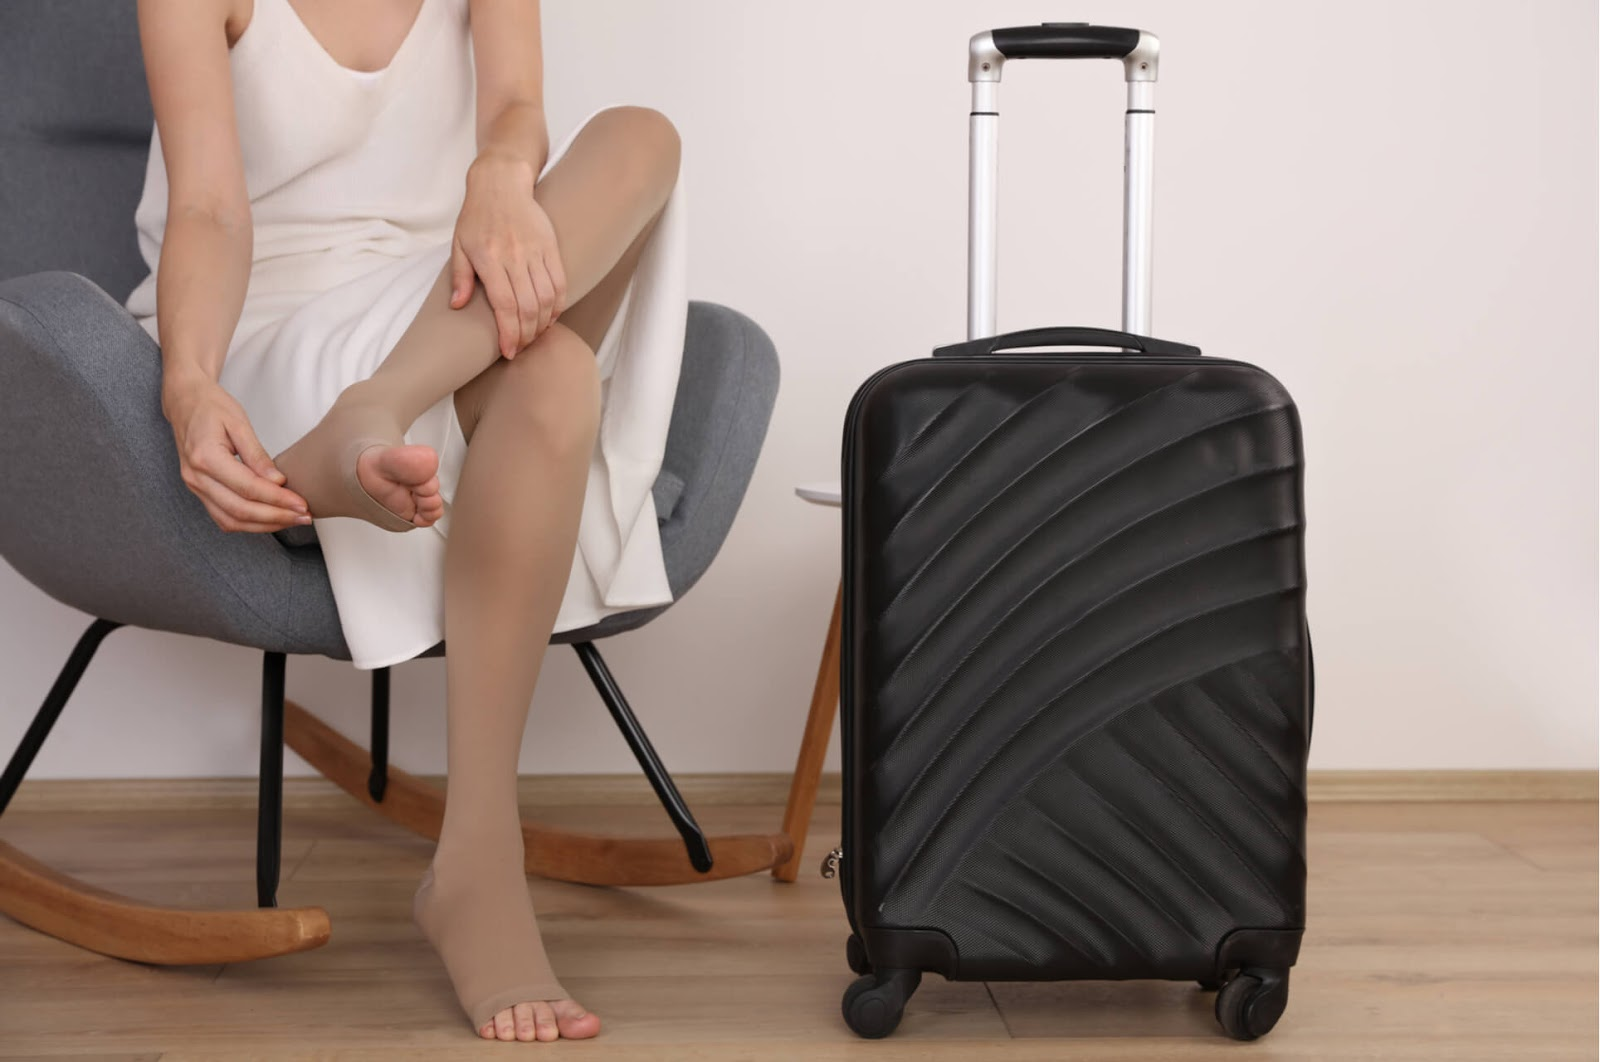 Travelling with Varicose Veins: Things You Should Know Before You Fly